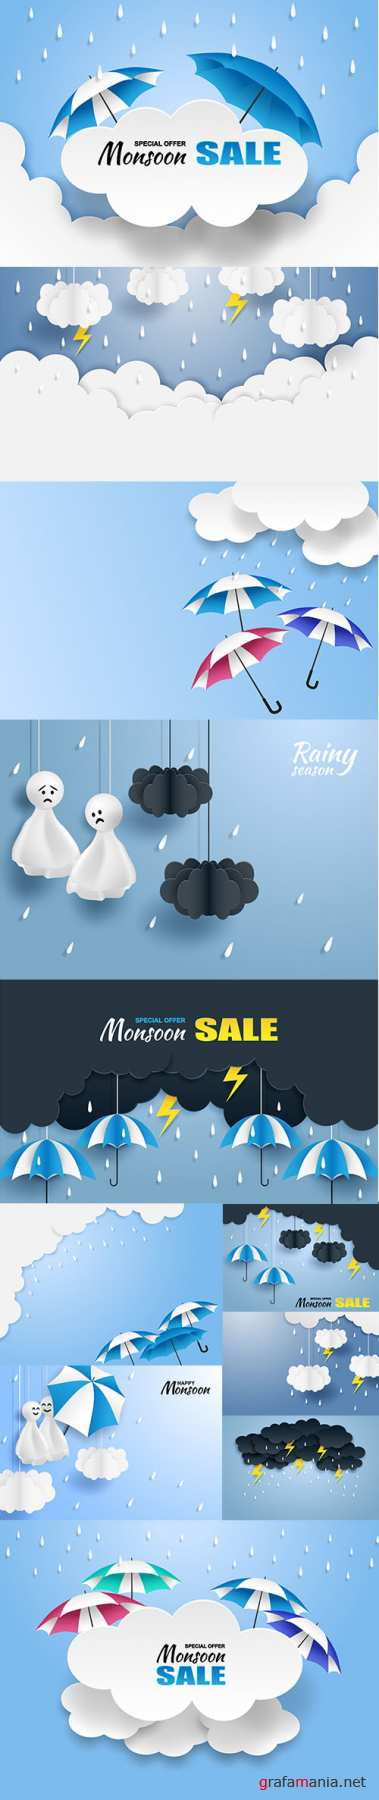 Monsoon Rainy Season Sale Banner Vector Set